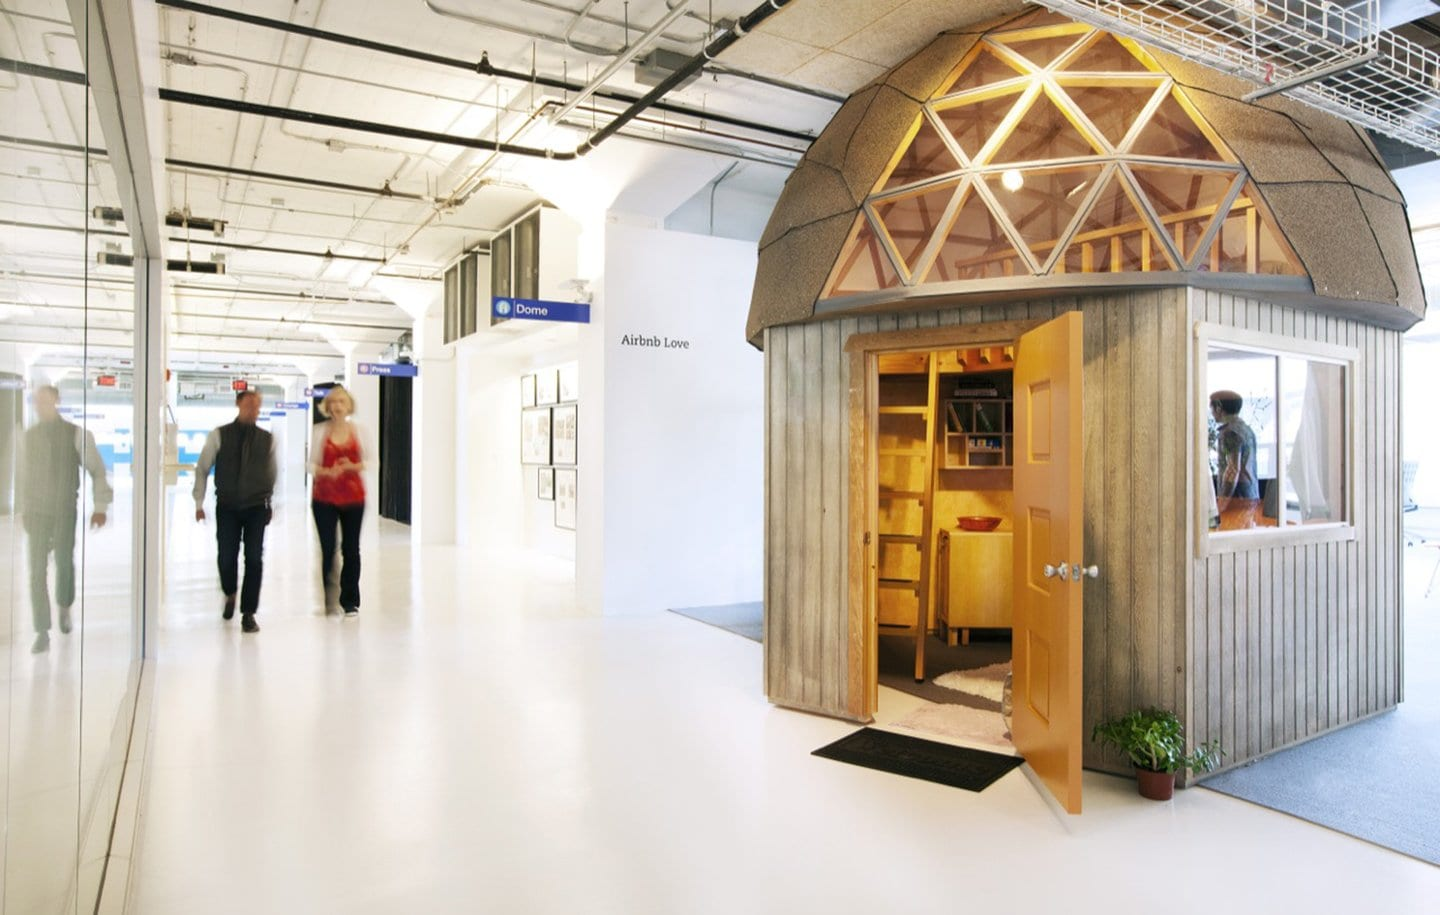 airbnb cool office design dome office interiors beehive shed airbnb cool office design